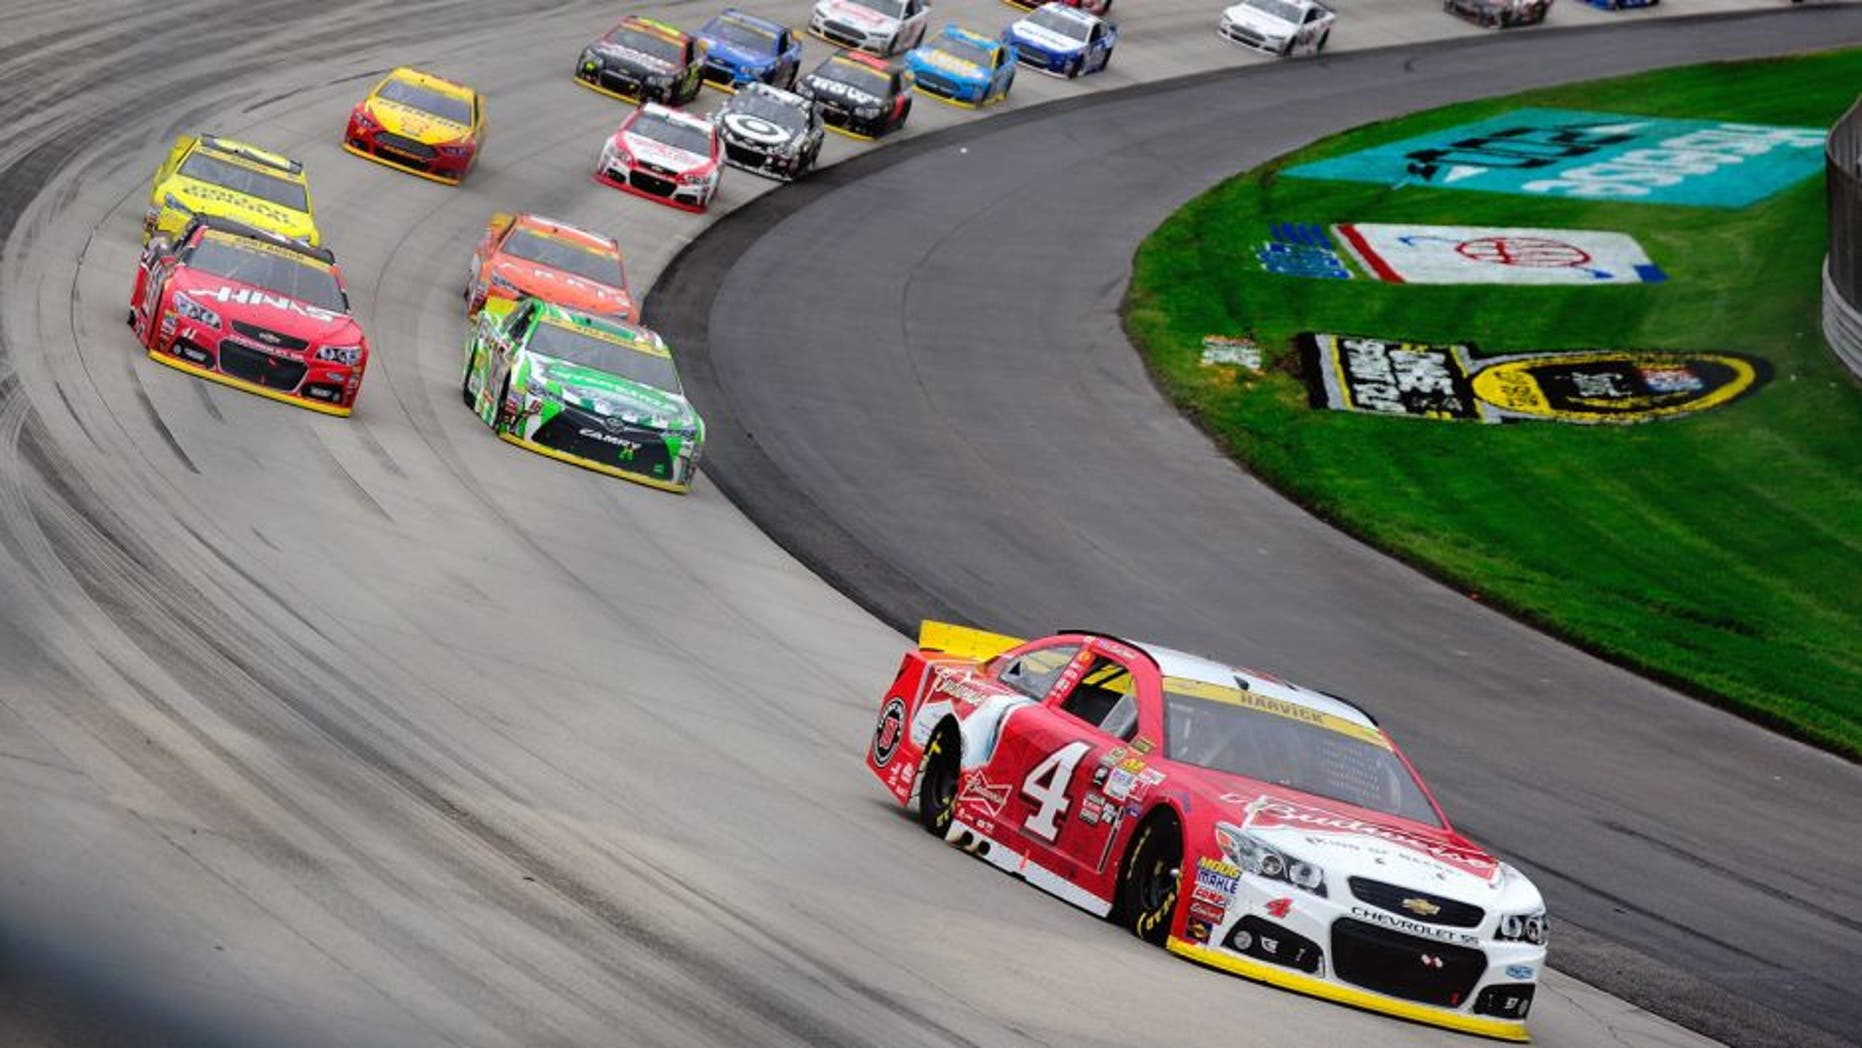 Kevin Harvick, driver of the #4 Budweiser/Jimmy John's Chevrolet, leads a pack of cars during the NASCAR Sprint Cup Series AAA 400 at Dover International Speedway on October 4, 2015 in Dover, Delaware. (Photo by Jeff Curry/Getty Images)